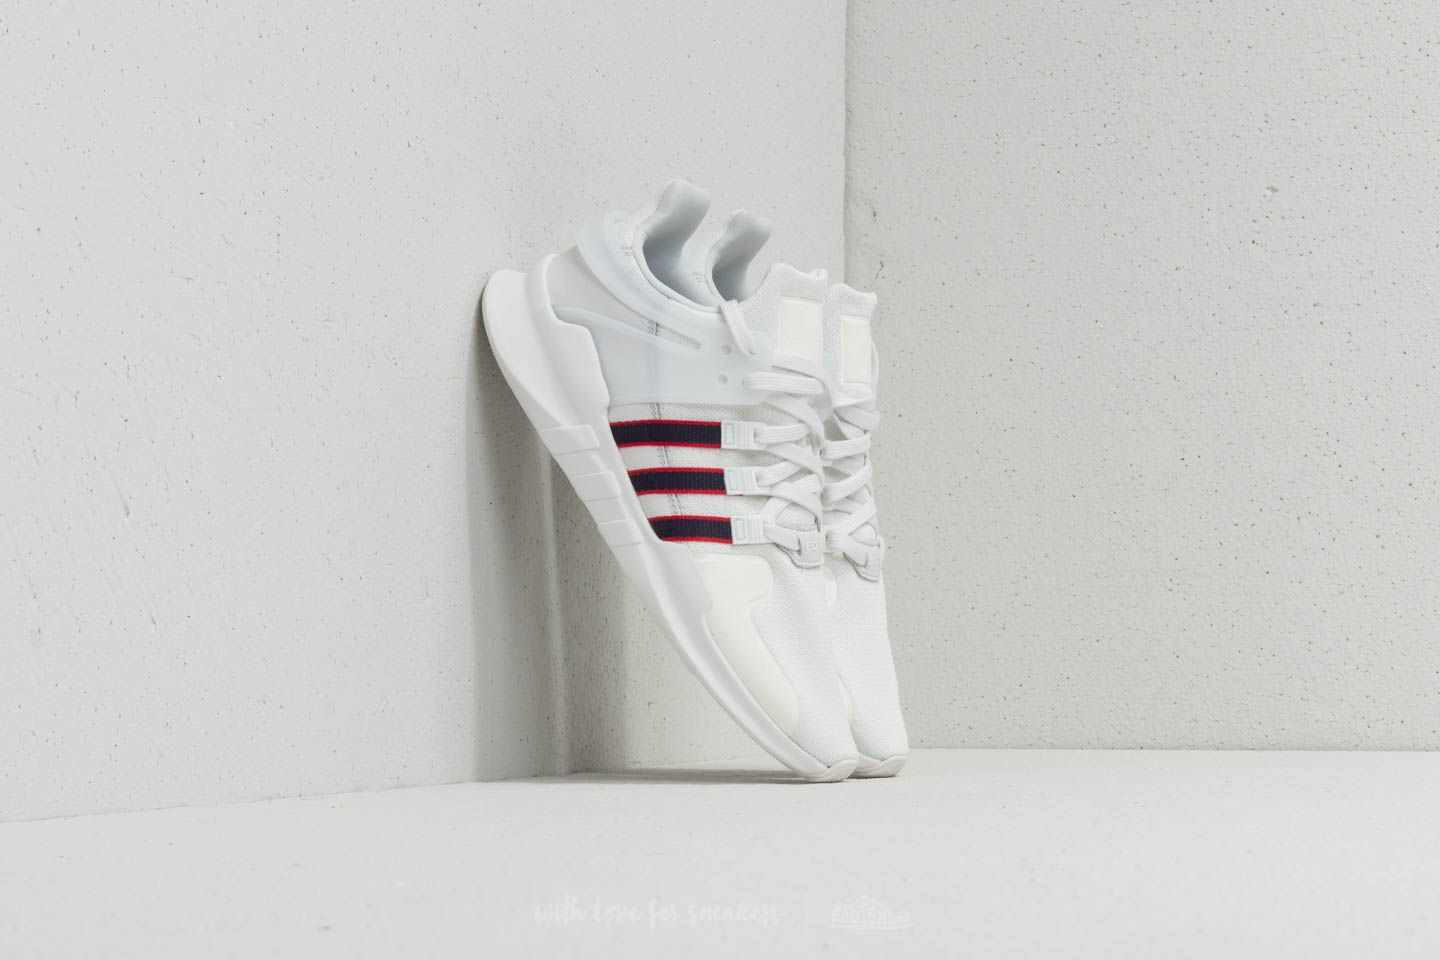 cheaper 70a38 aa9f2 adidas EQT Support ADV Crystal White  Collegiate Navy  Scarlet at a great  price 94